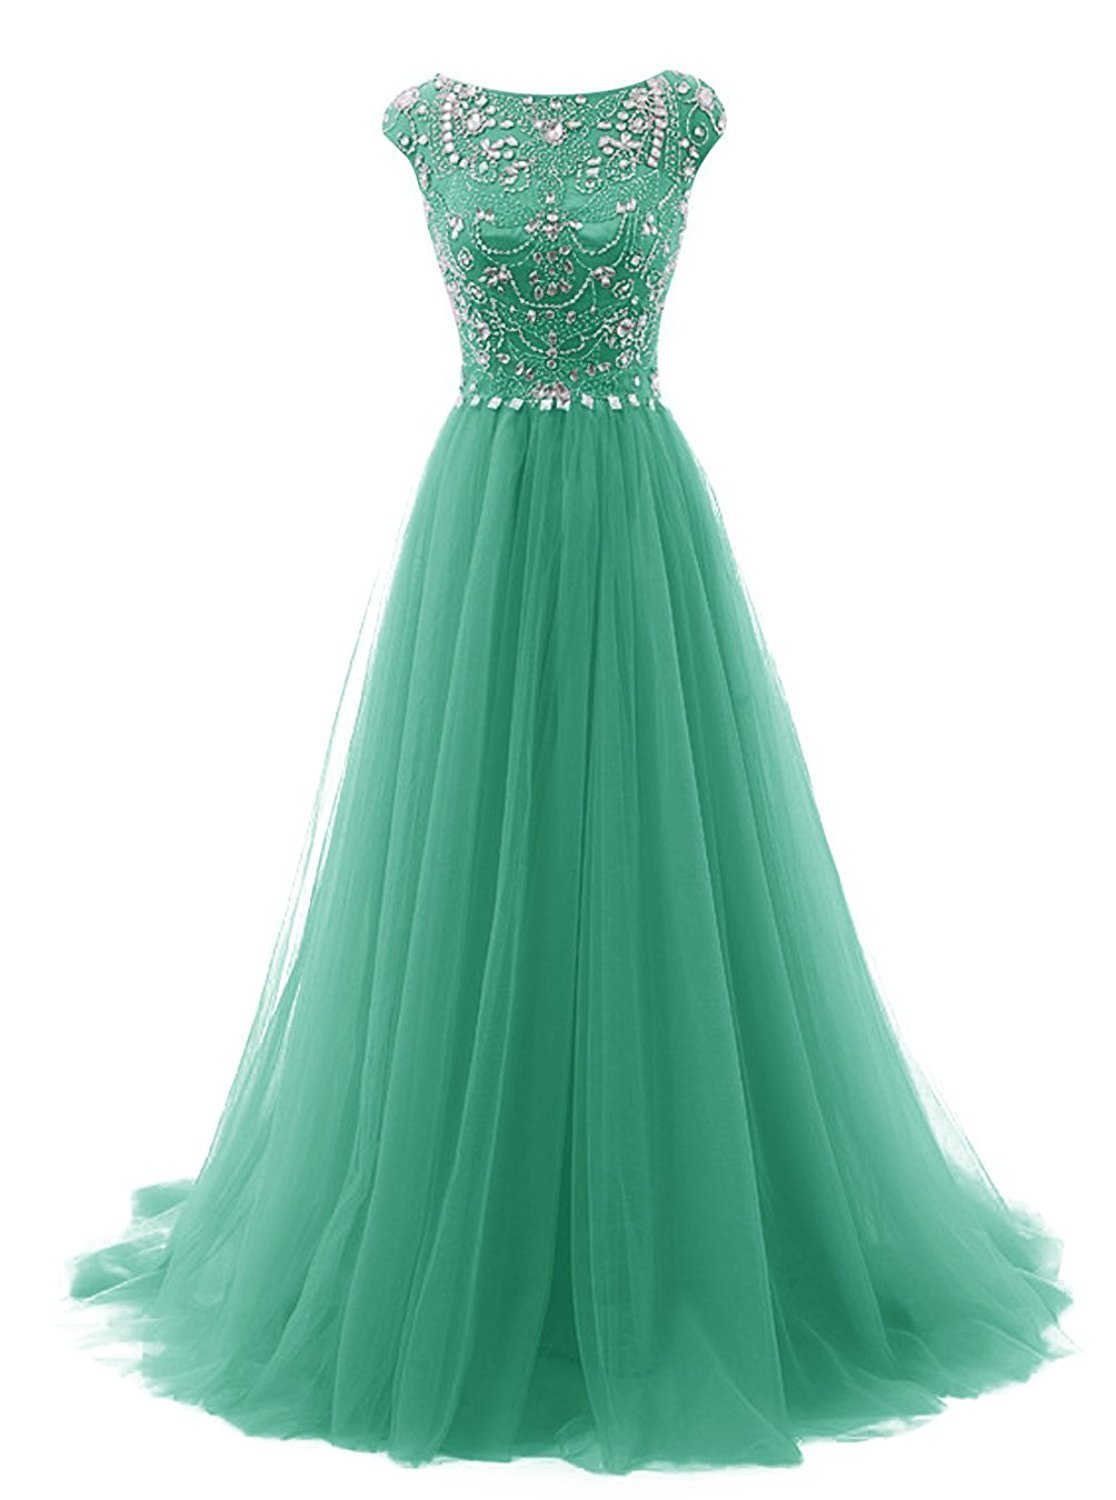 Available at Amazon: FASHION DRESS Women's Beads Long Prom Dress Tulle Cap Sleeves Evening Dress